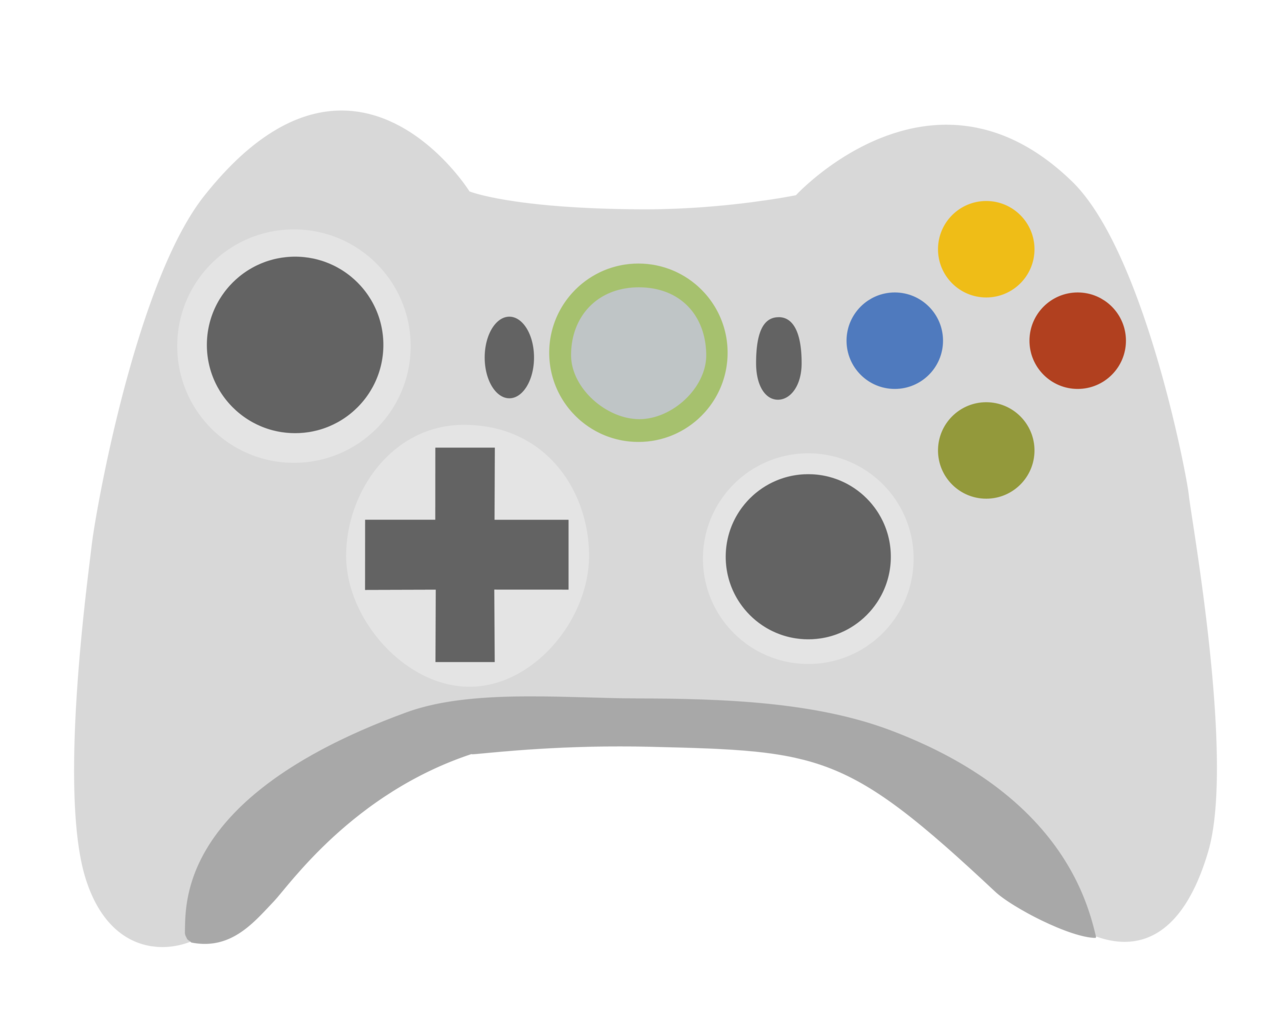 Control vector png. Image